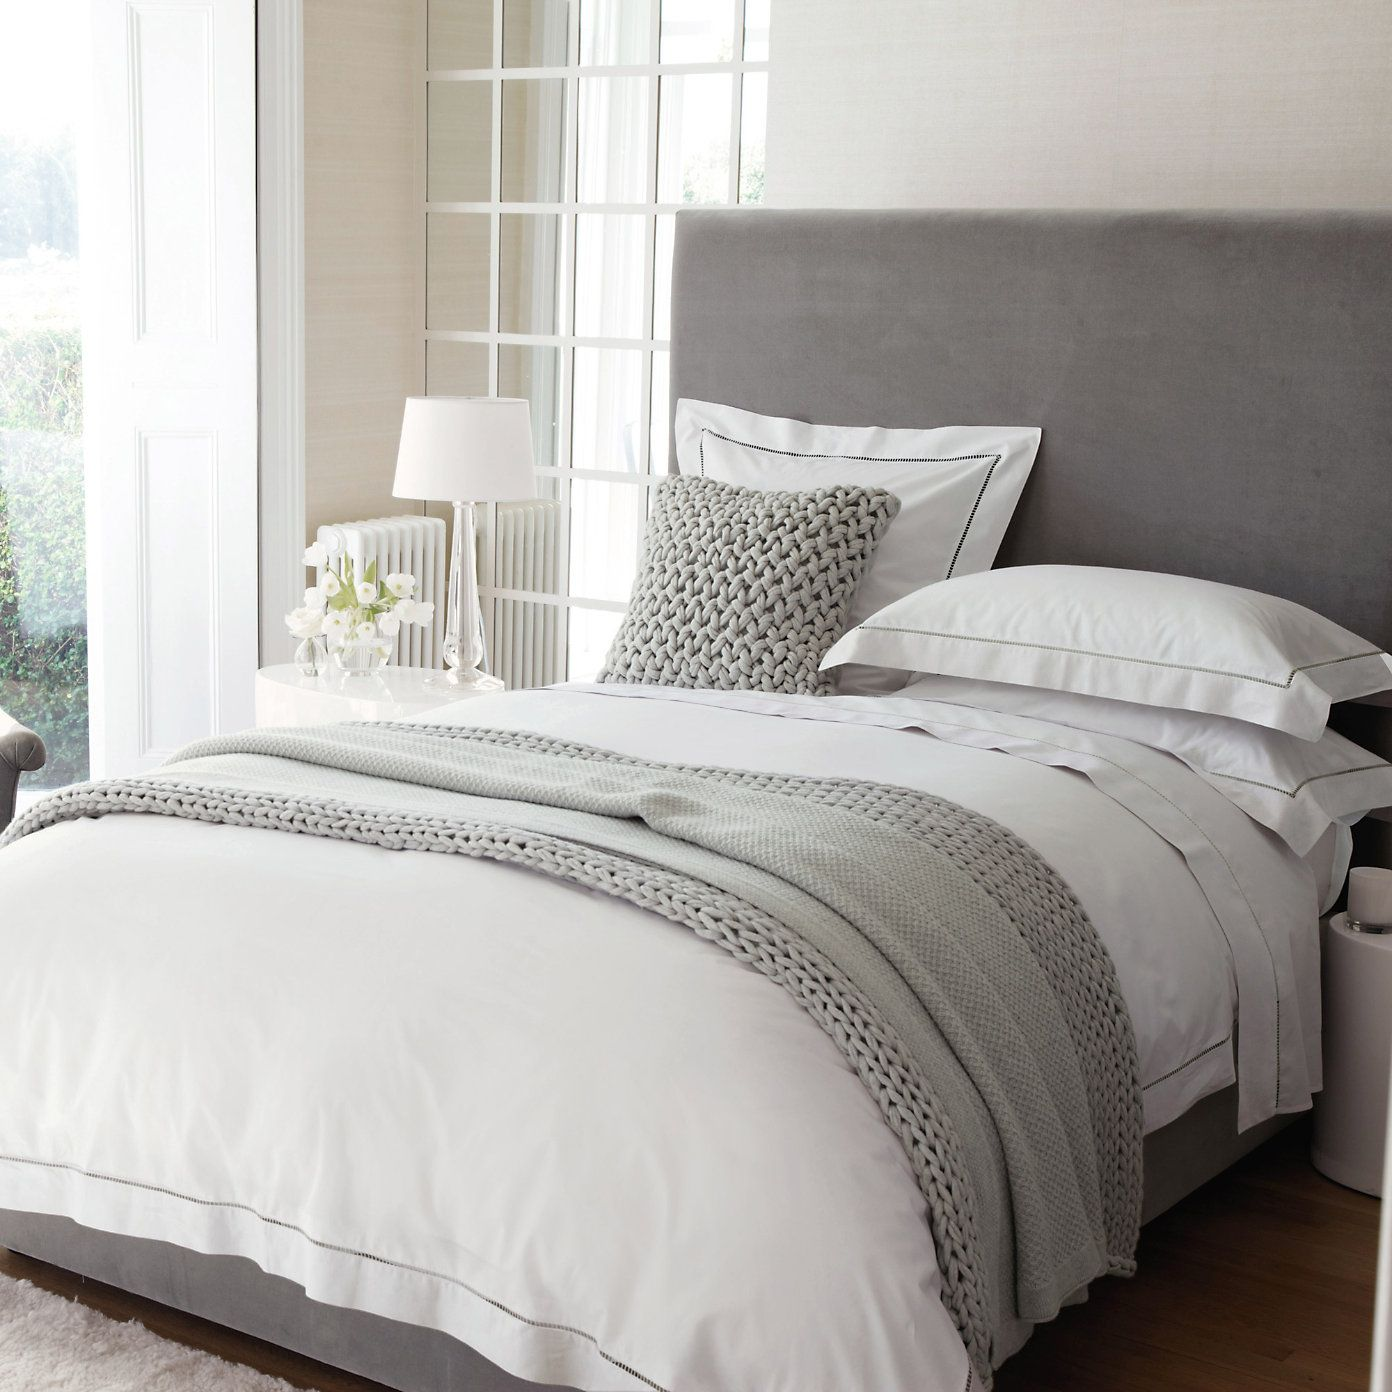 I Love These Pale Grey Neutrals For Bedrooms And Like The Texture Adorable Bedrooms And More Design Ideas